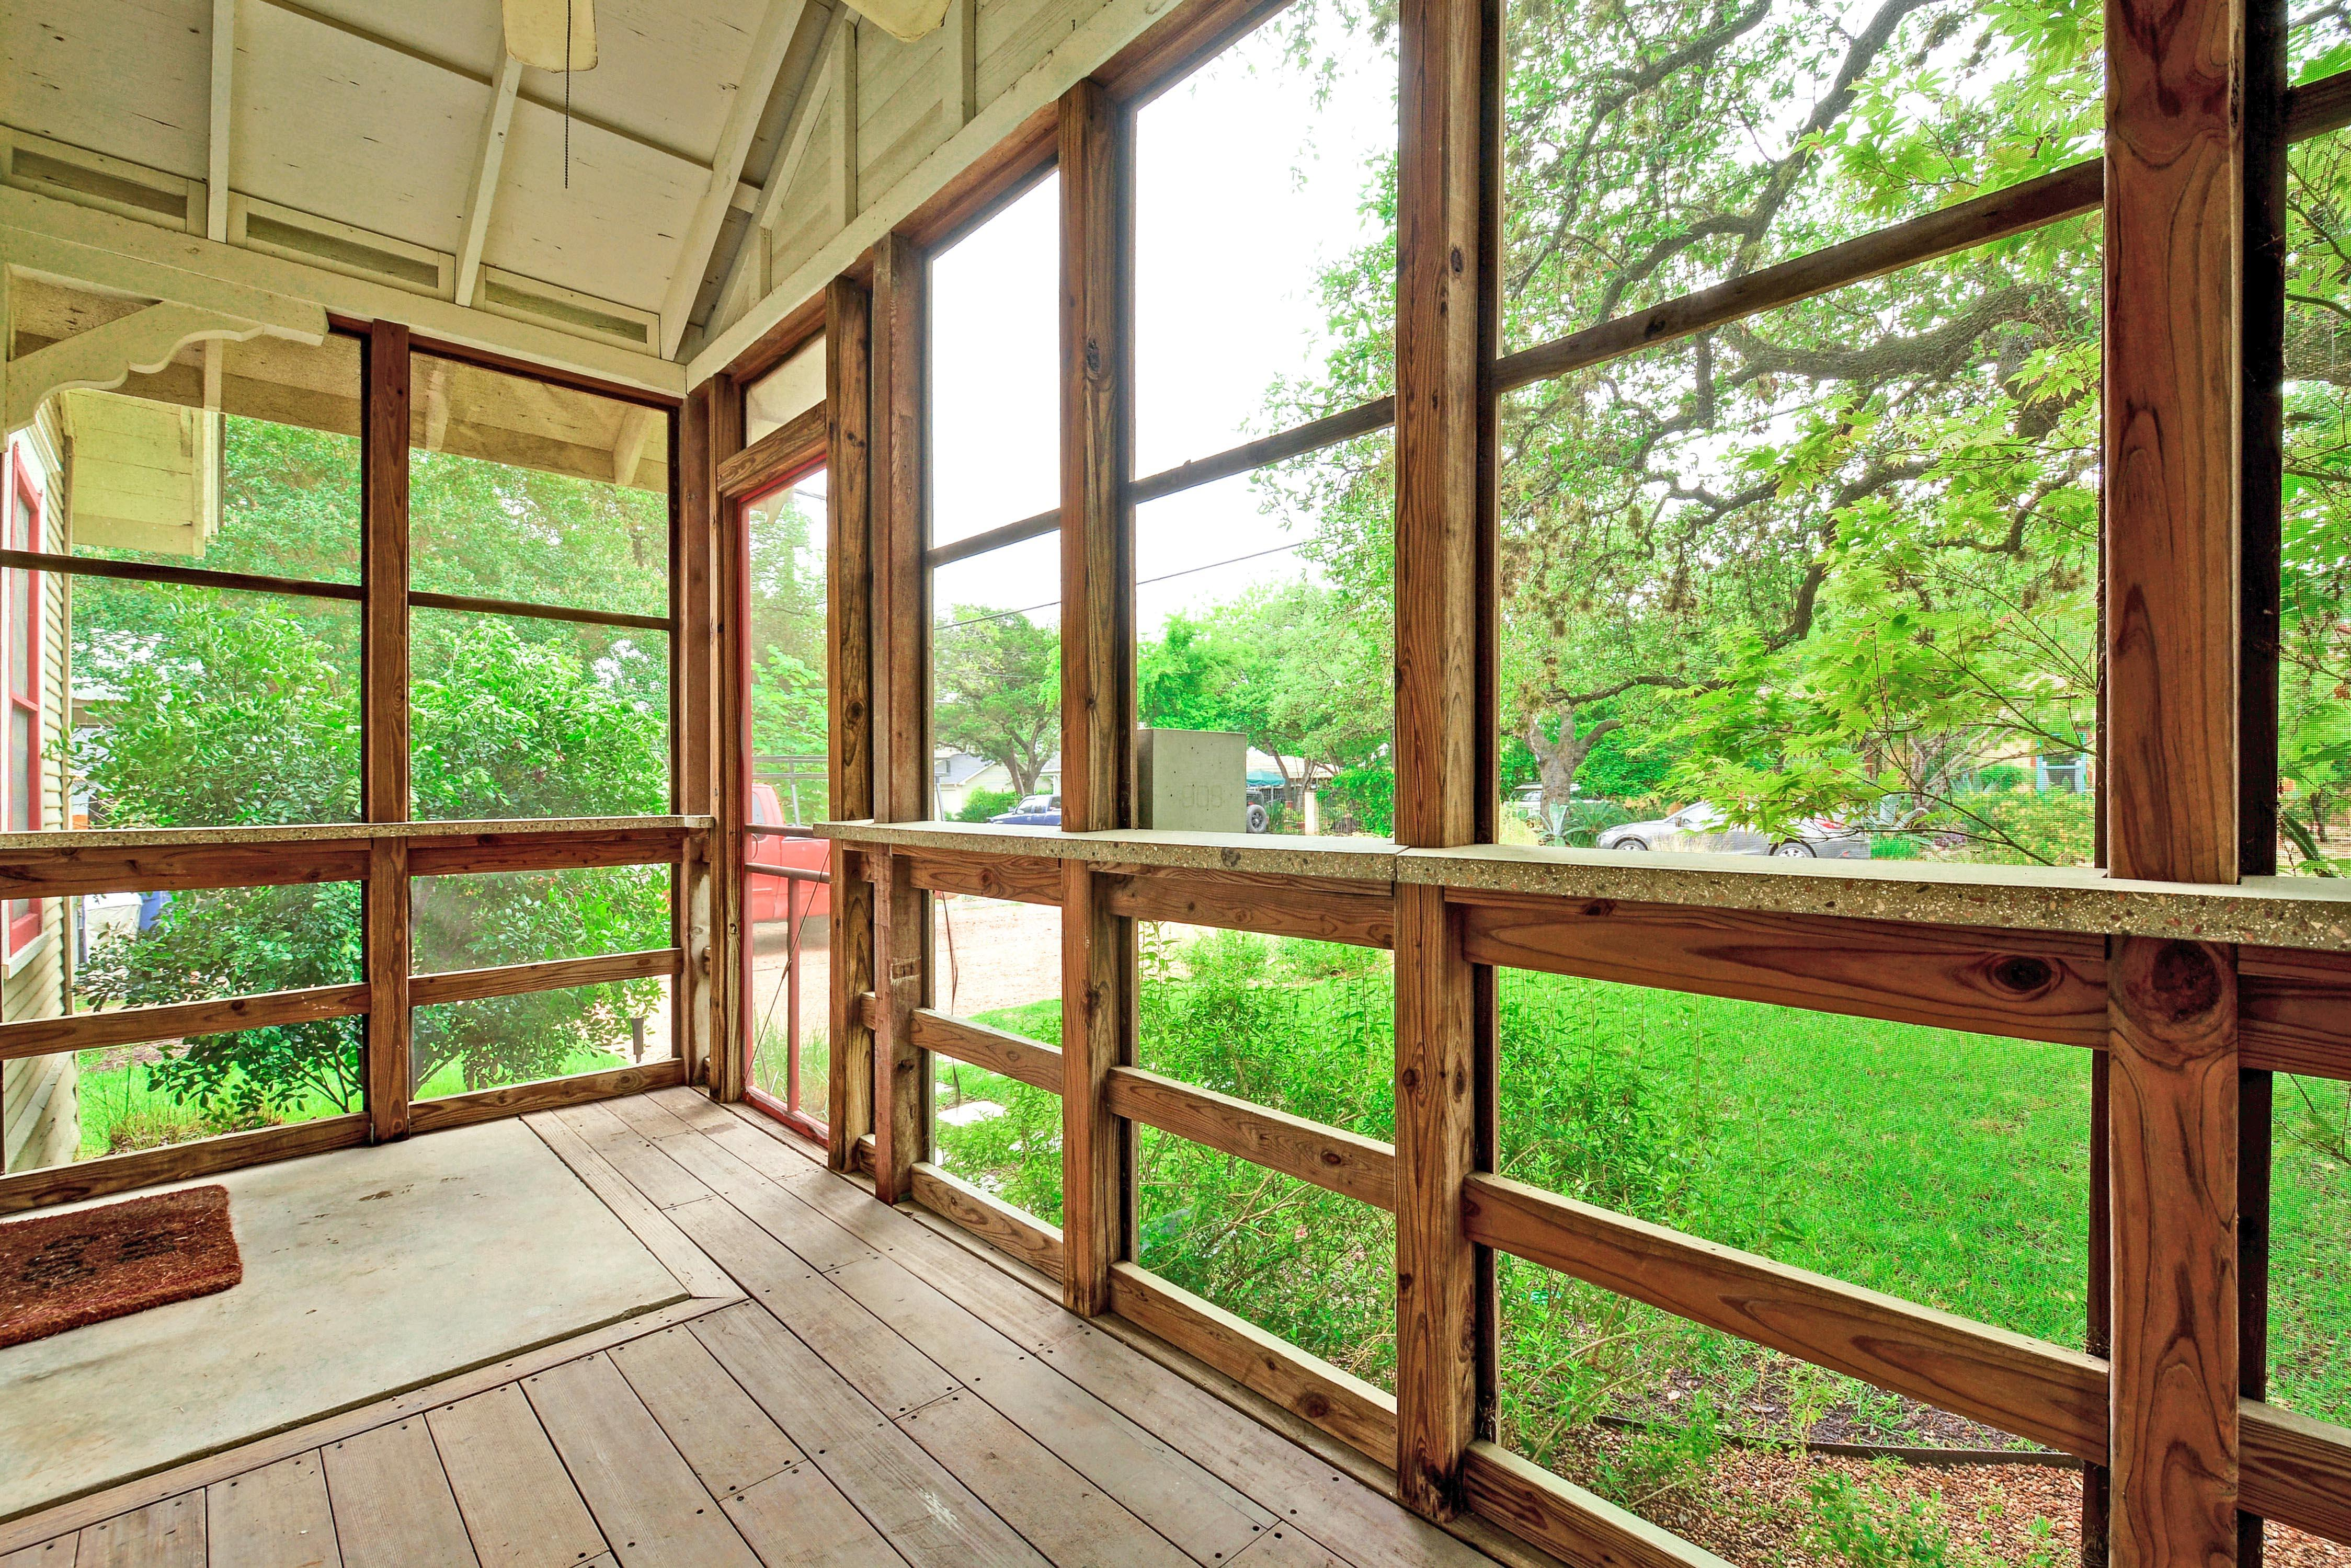 The screened front porch is a relaxing spot to enjoy morning coffee.